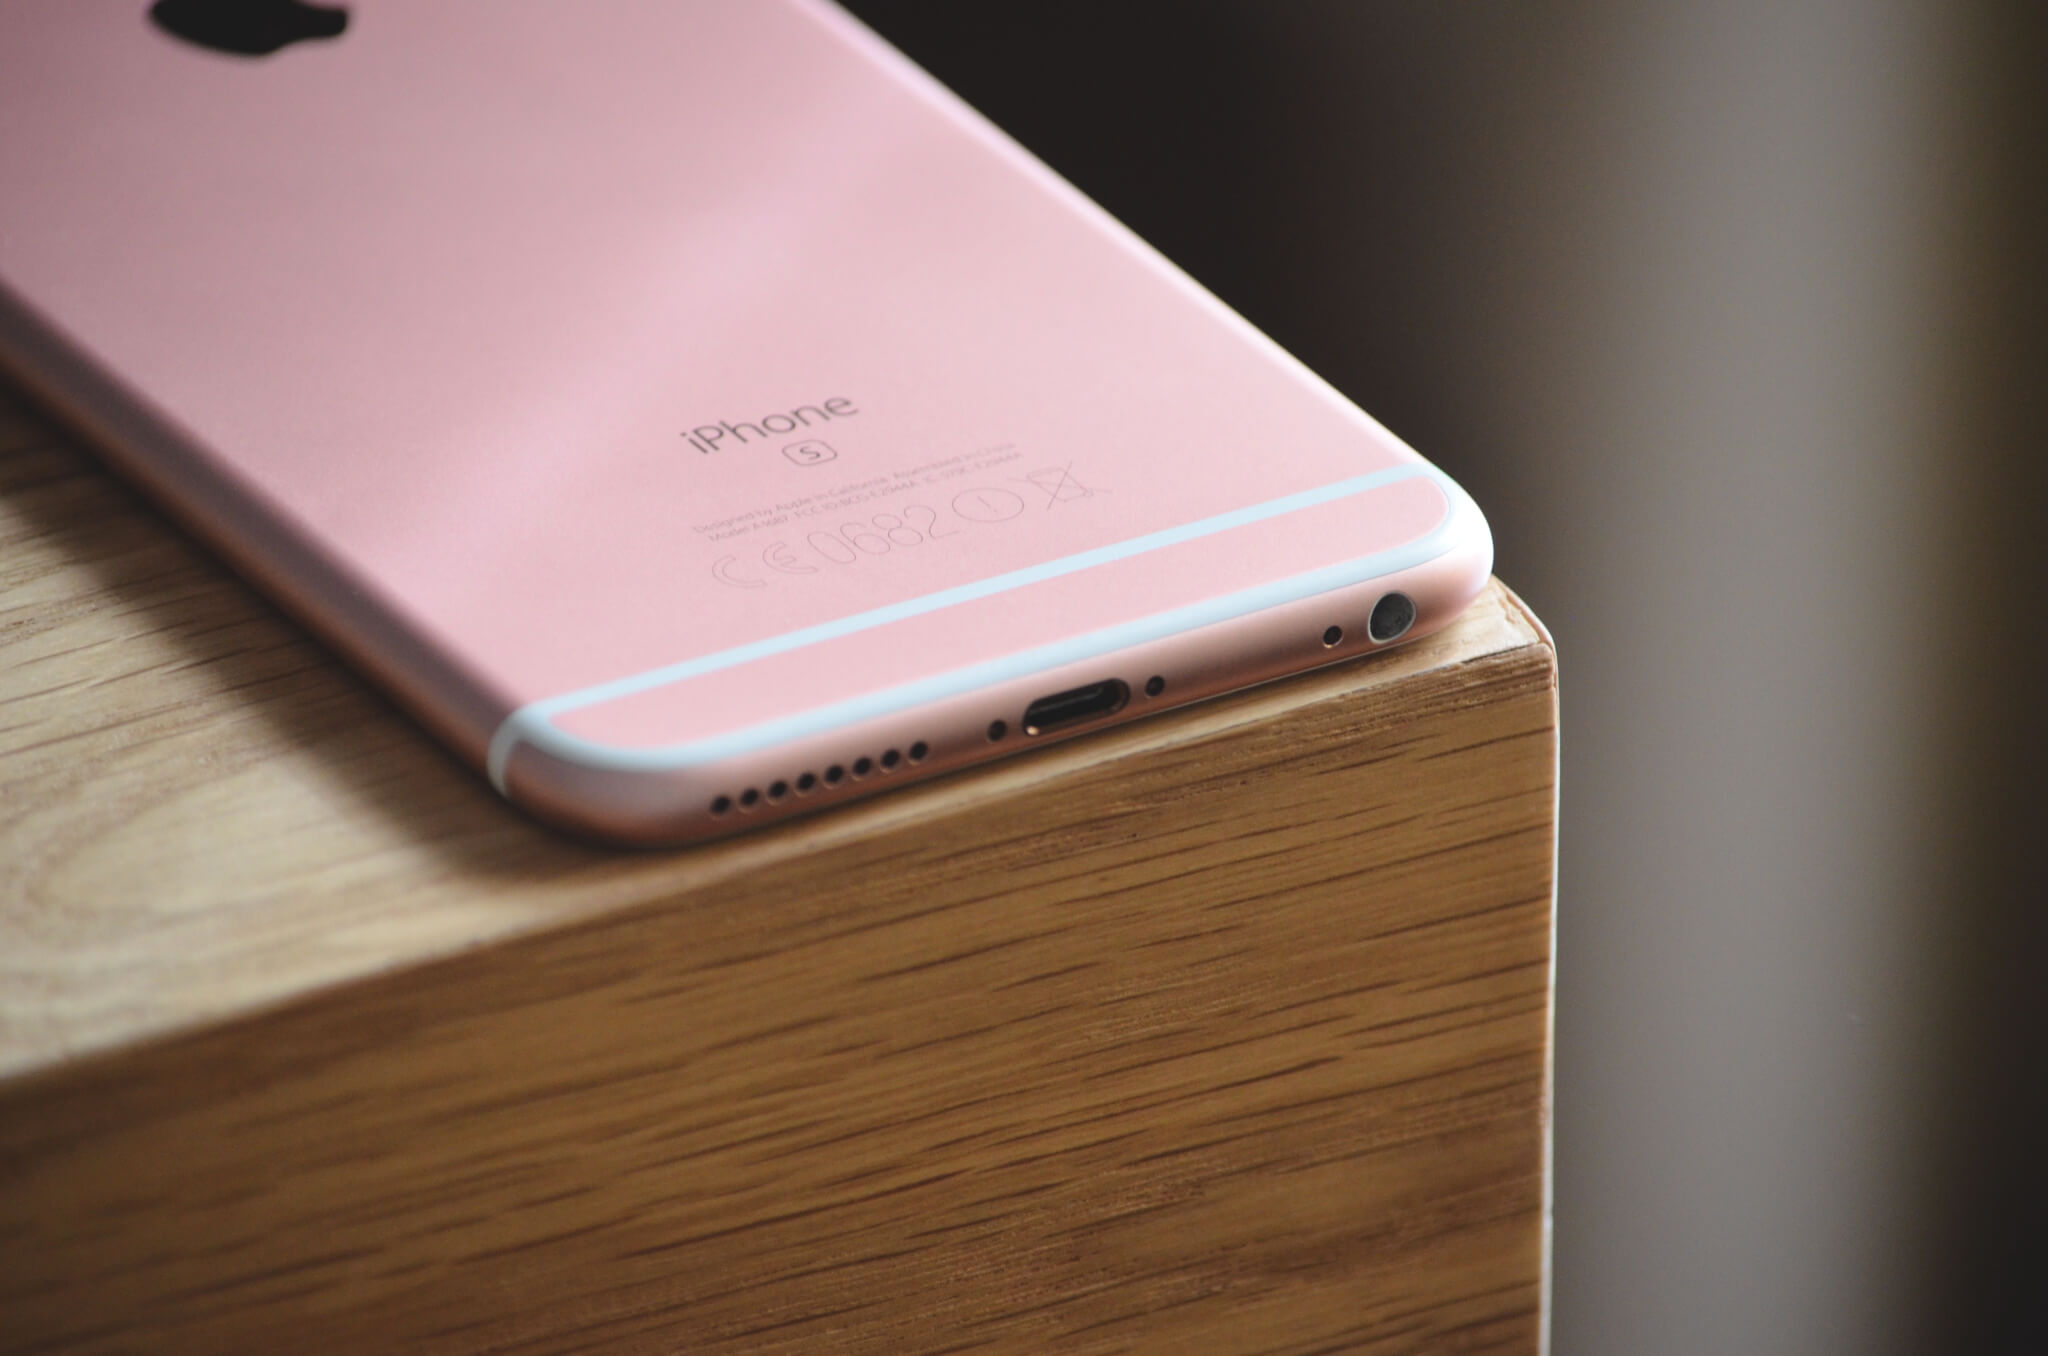 iPhone6s Apple - Technology Phone laying on the table